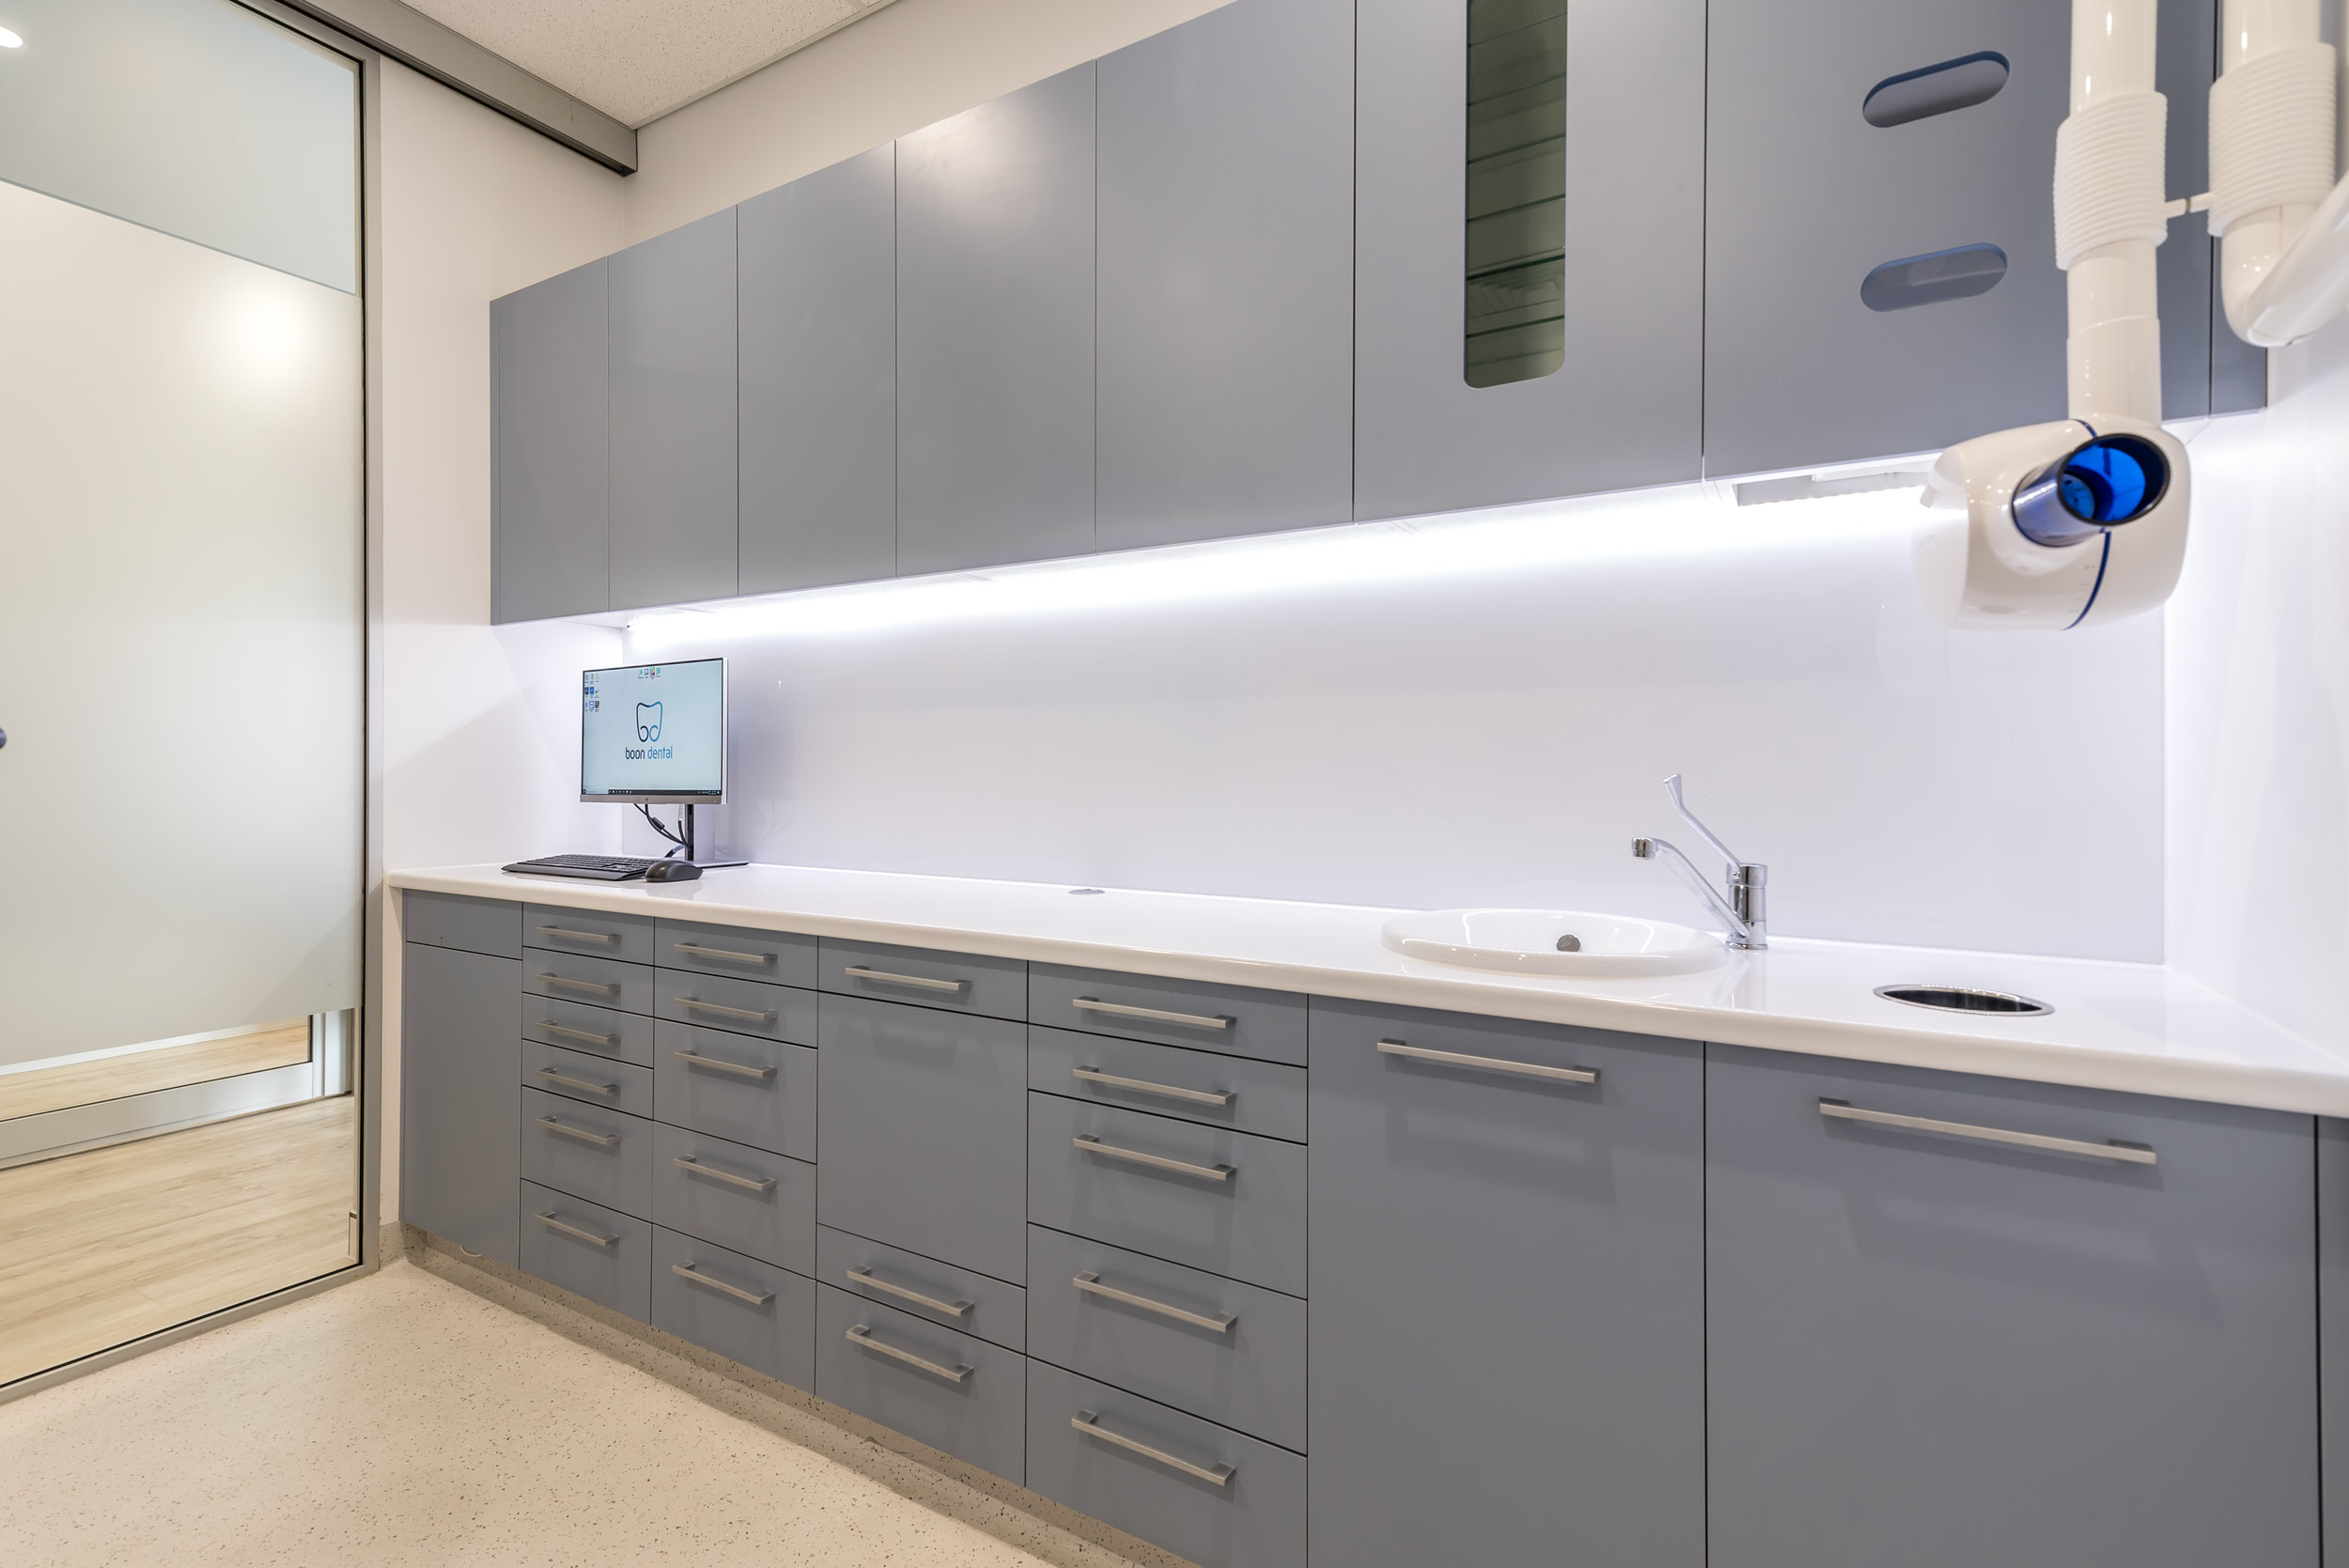 Commodore Dental and Medical Fitout - Sydney-41.jpg